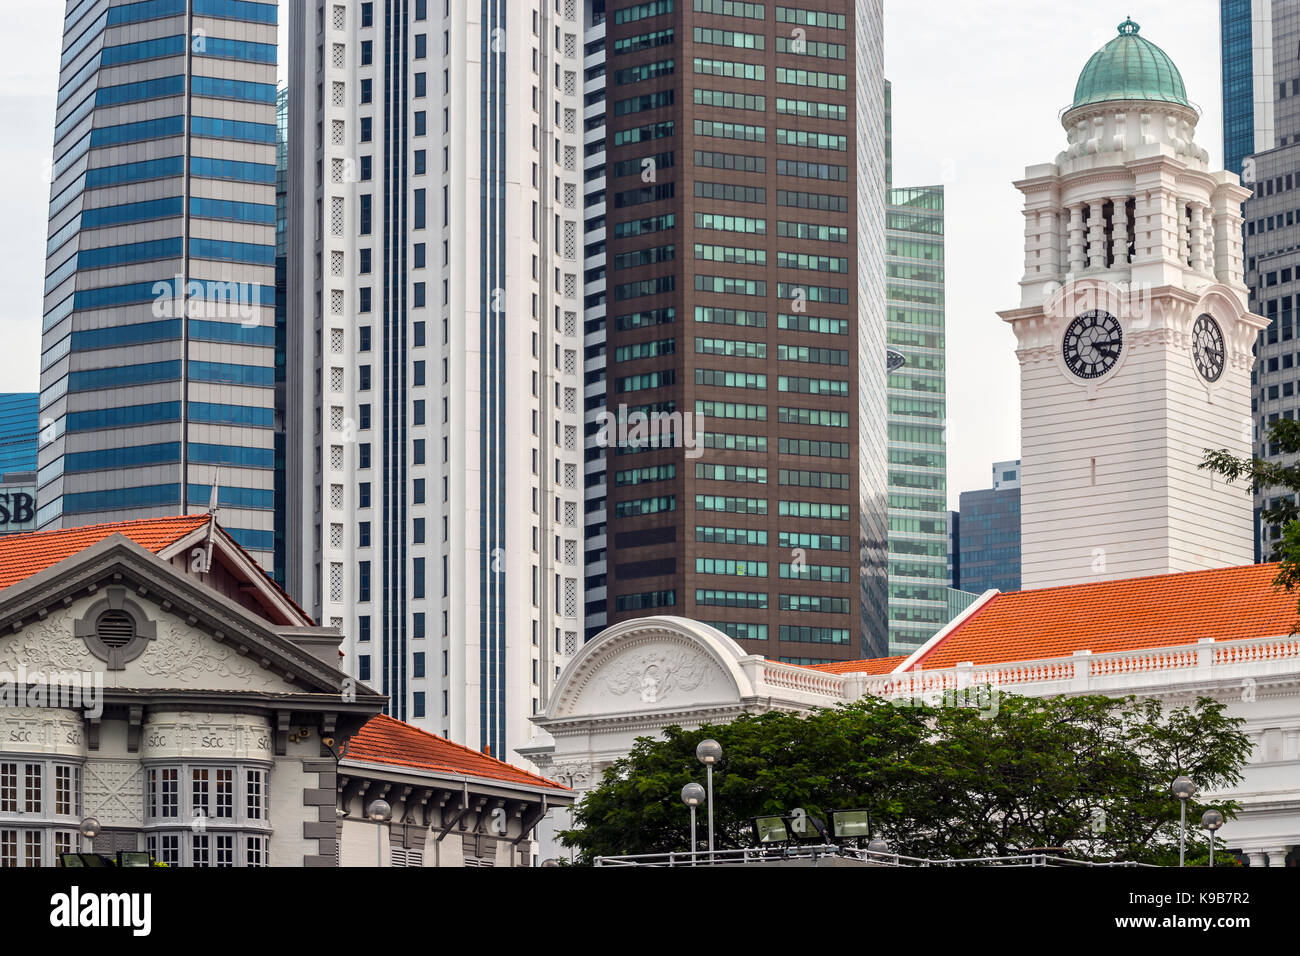 Central Business District, Singapore, with Singapore Cricket Club Clubhouse and Concert Hall Clock Tower - Stock Image